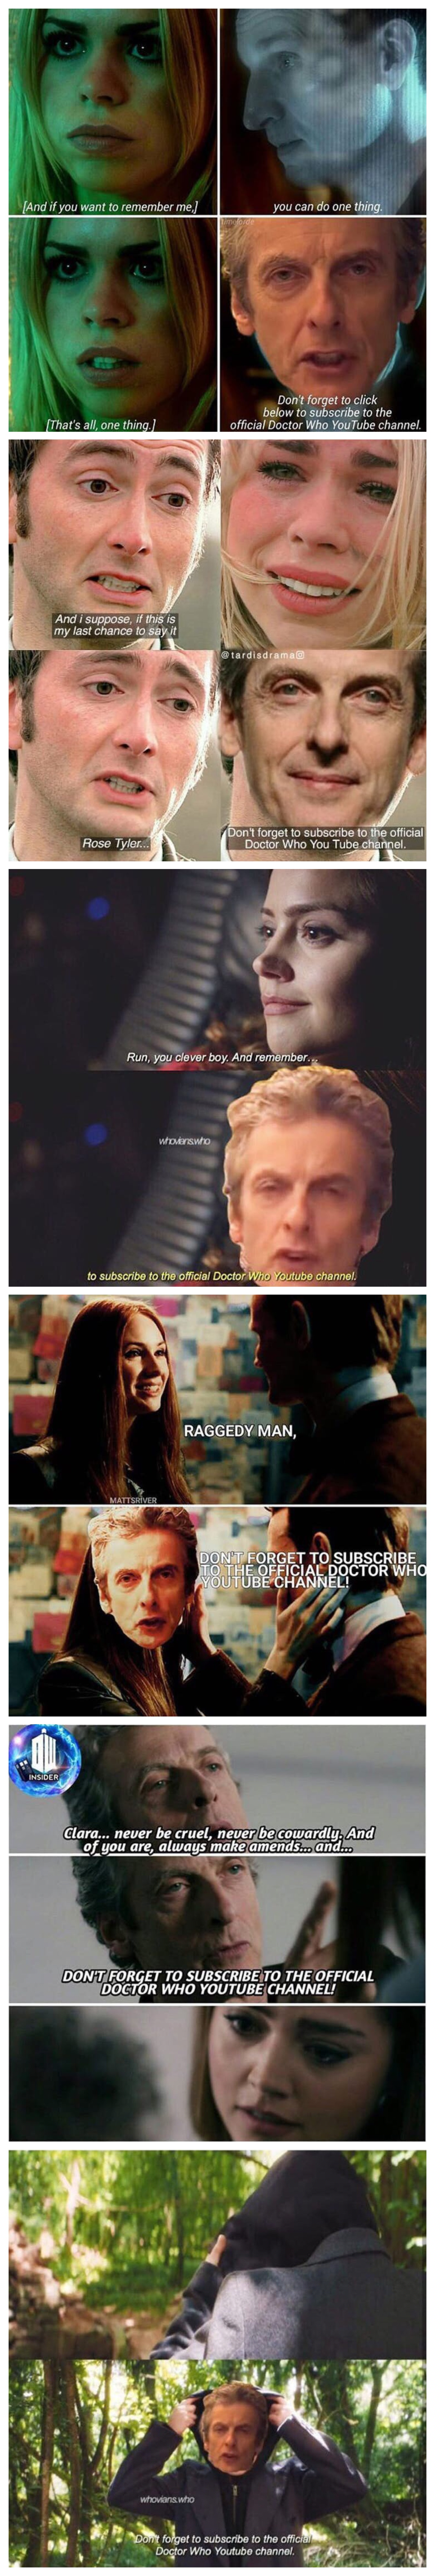 Don T Forget To Subscribe To The Official Doctor Who Youtube Channel Doctor Who Meme Images Not Mine Doctor Who Funny Doctor Who Doctor Who Meme